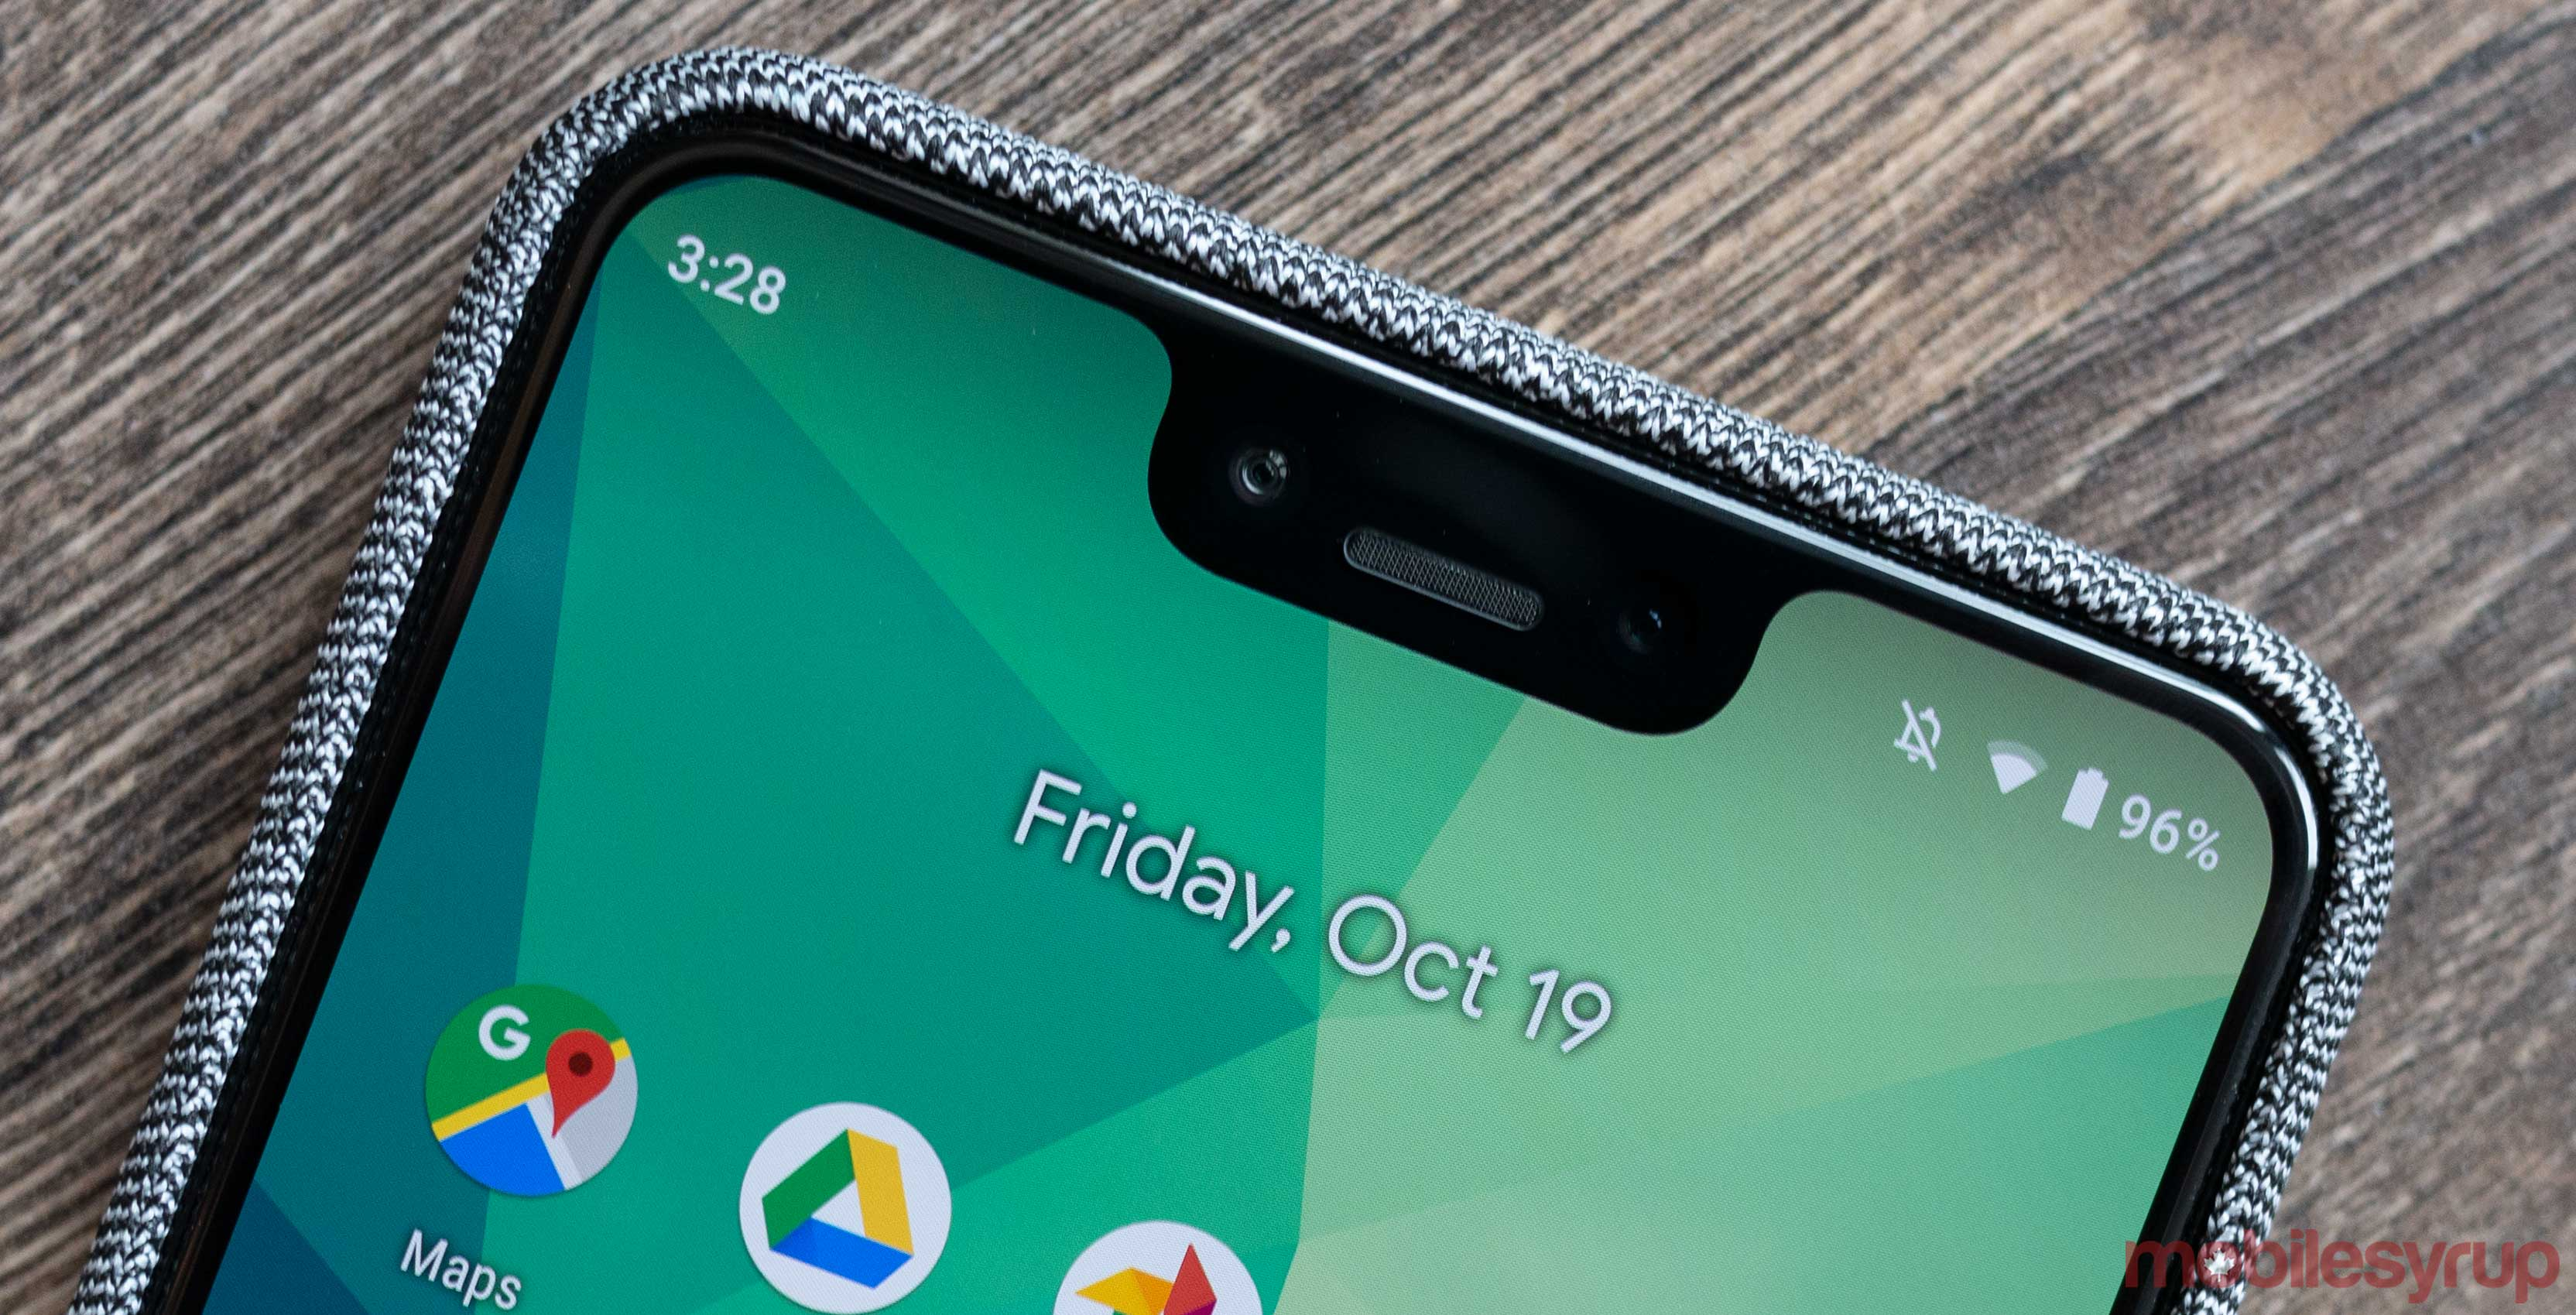 Google's Pixel 3 reportedly suffers from multitasking memory